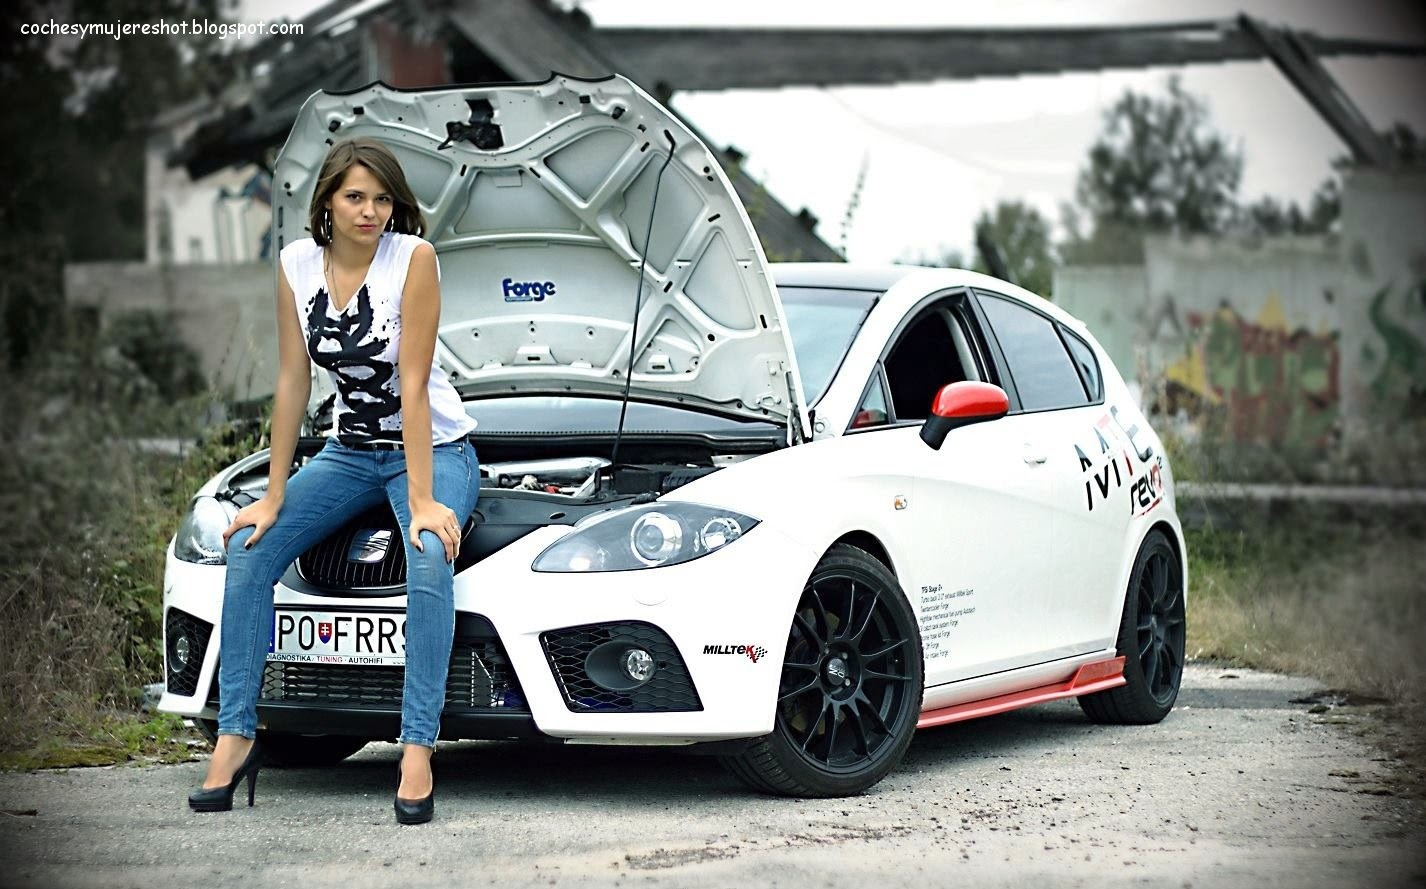 http://4.bp.blogspot.com/-tid2eqjsWFc/UZuAAQtHbQI/AAAAAAAABcI/L4A9esj1KFU/s1600/seat-spain-car-girl-babe-lady-woman-best-vehicle-motor-beautiful-wallpaper-desktop-screen-mobile-cell-photo-cool.jpg